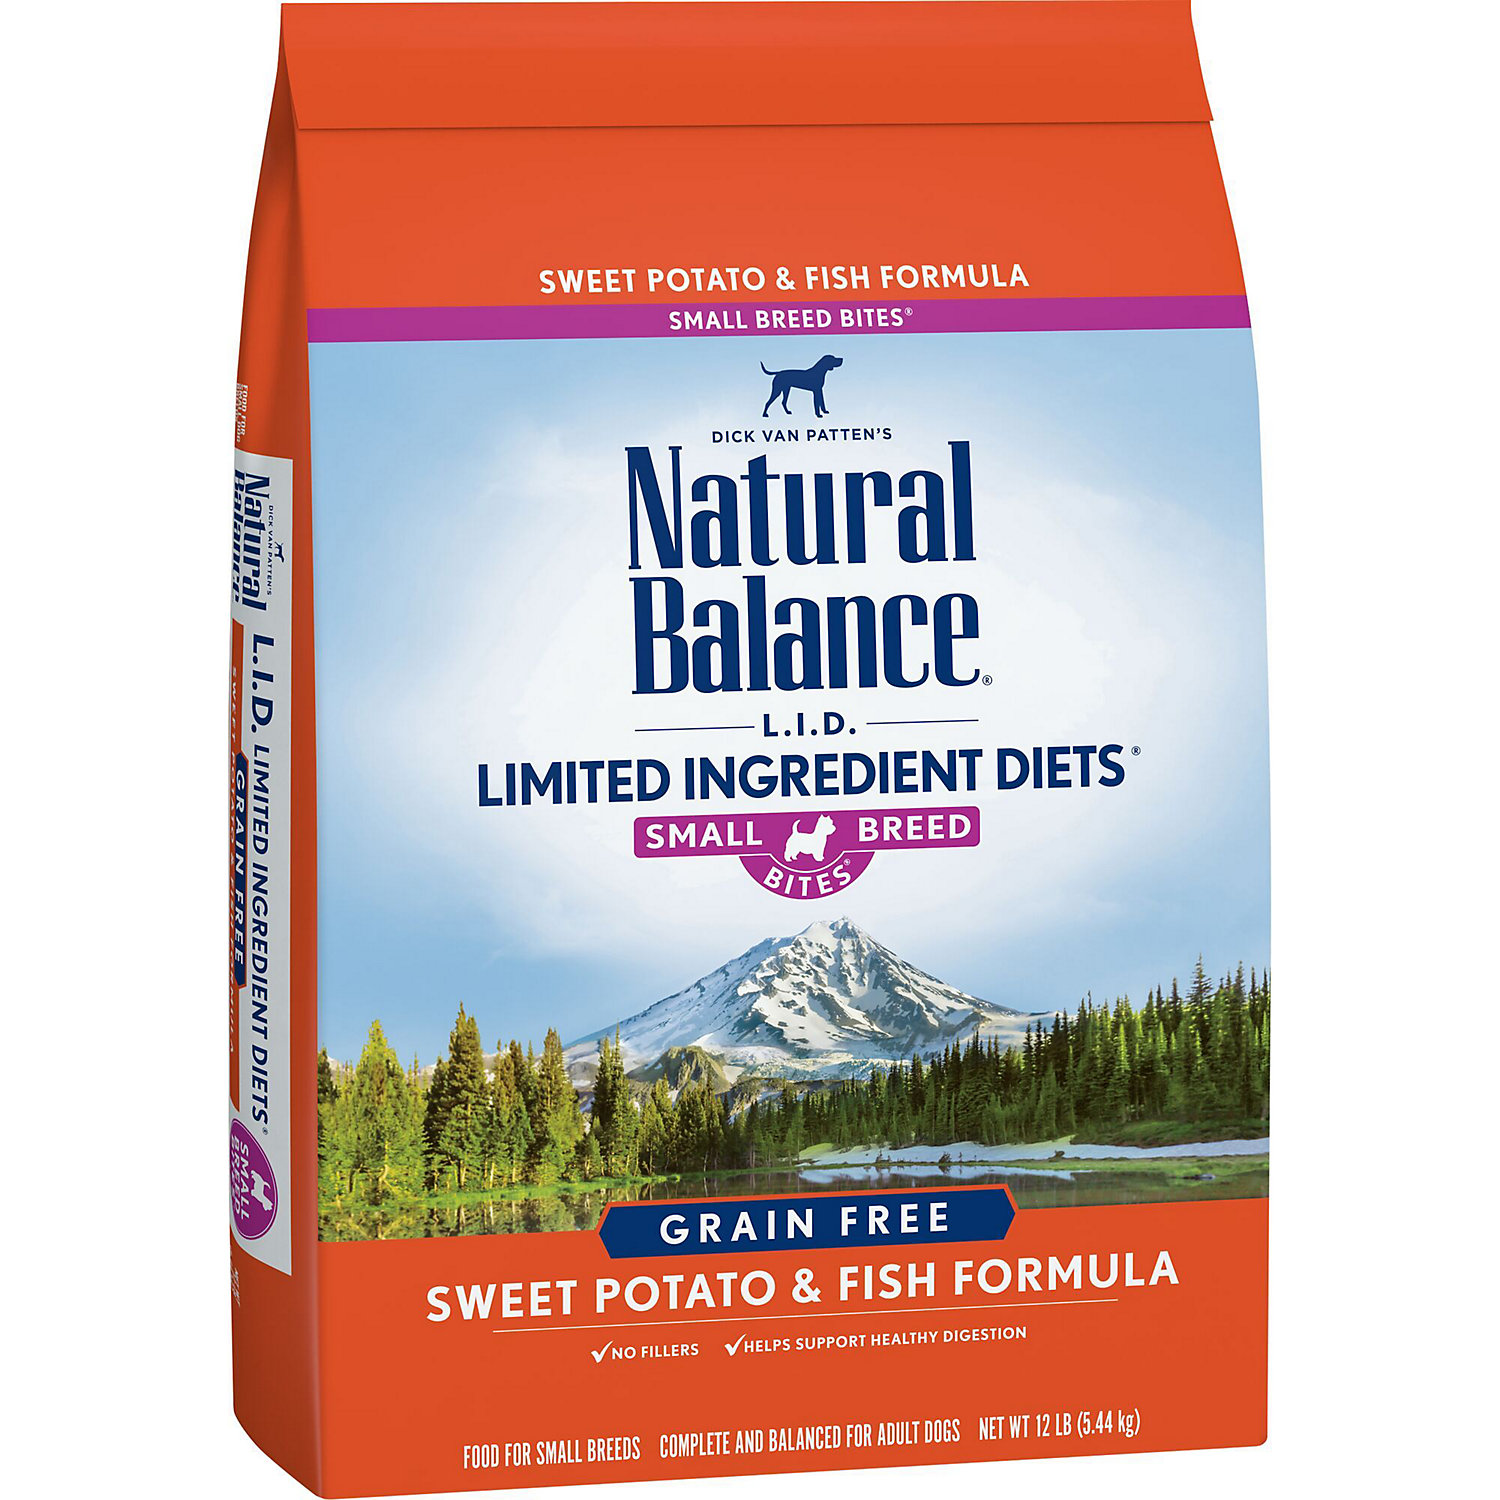 Natural Balance L.i.d. Limited Ingredient Diets Sweet Potato Fish Small Breed Bites Dog Food 12 Lbs.